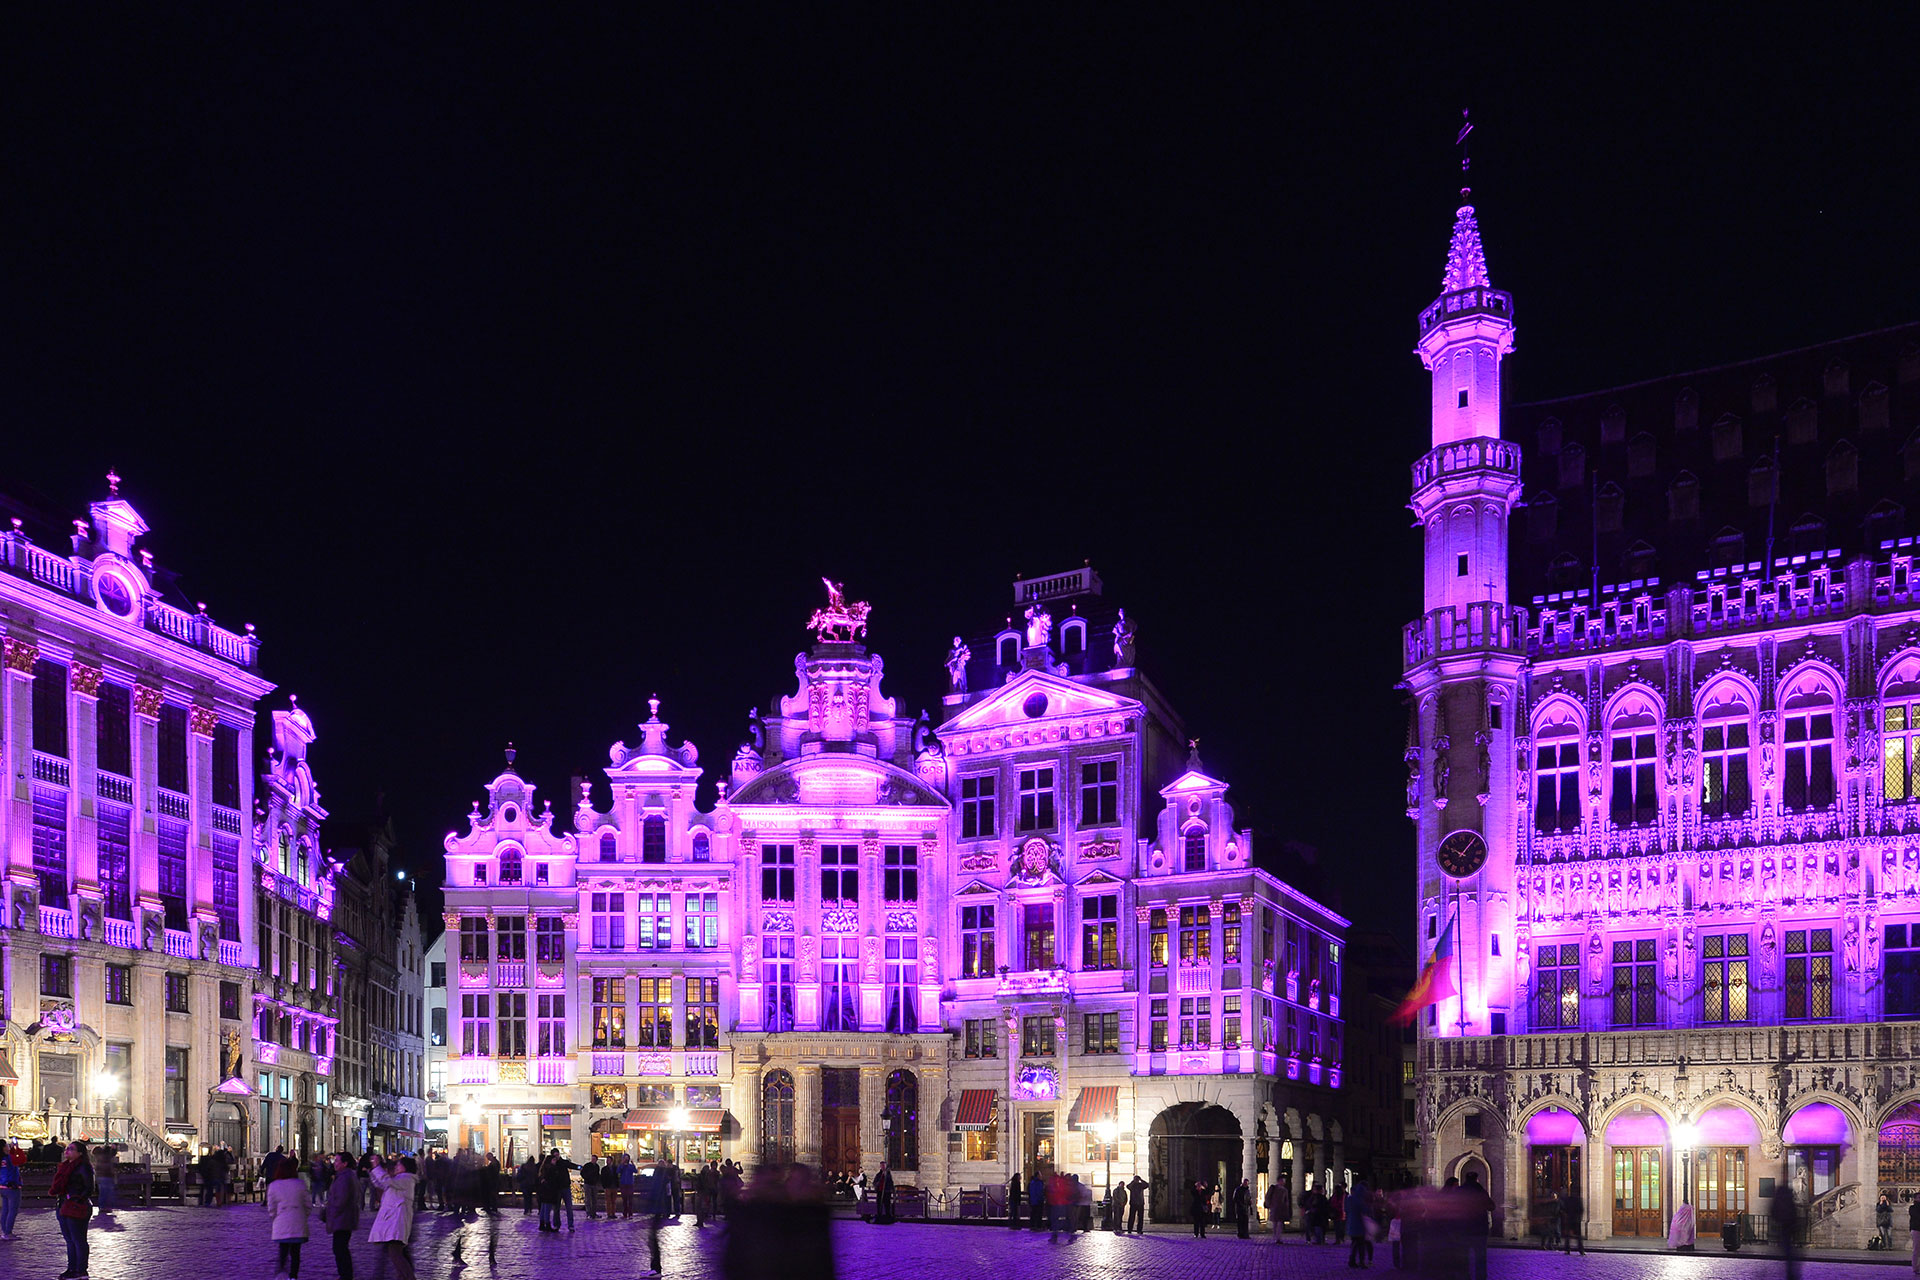 The LED lighting on Grand Place in Brussels uses the same energy consumption to light 27 buildings as what was previously used to illuminate 2